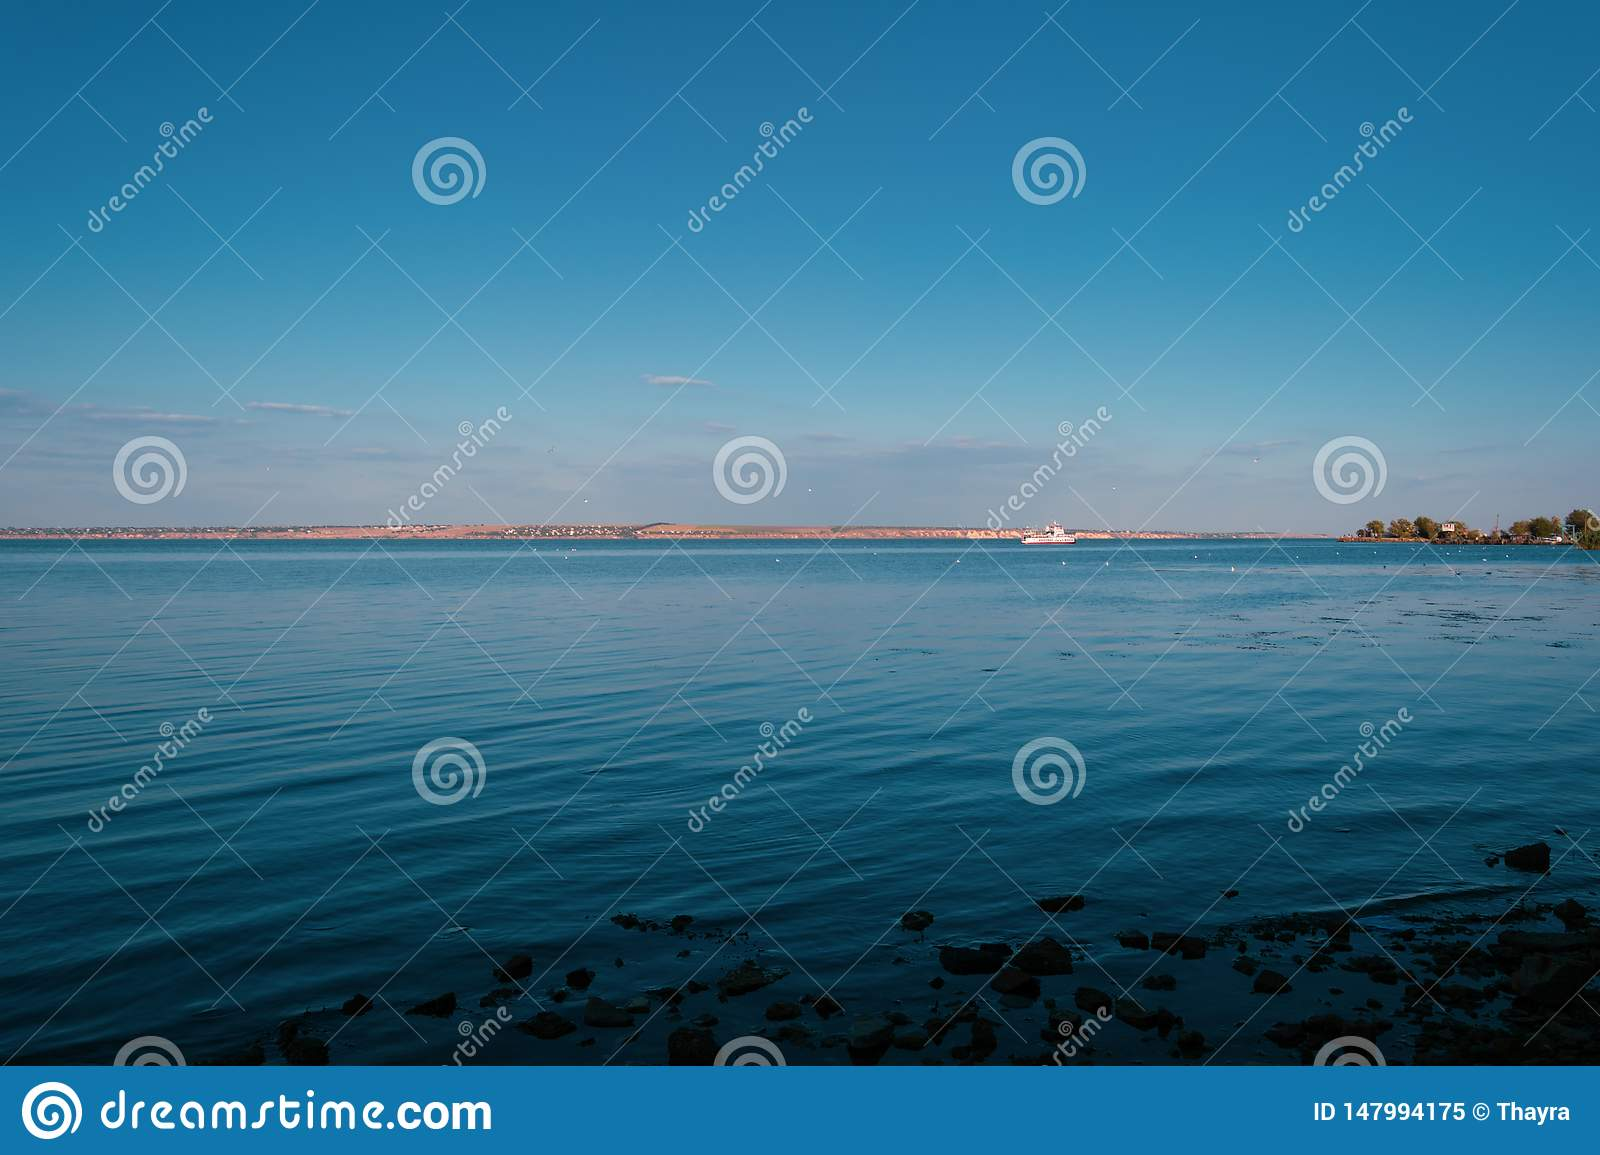 Motor ship in the sea in the evening sunlight over sky background. Summer adventure or vacation concept. Copy space